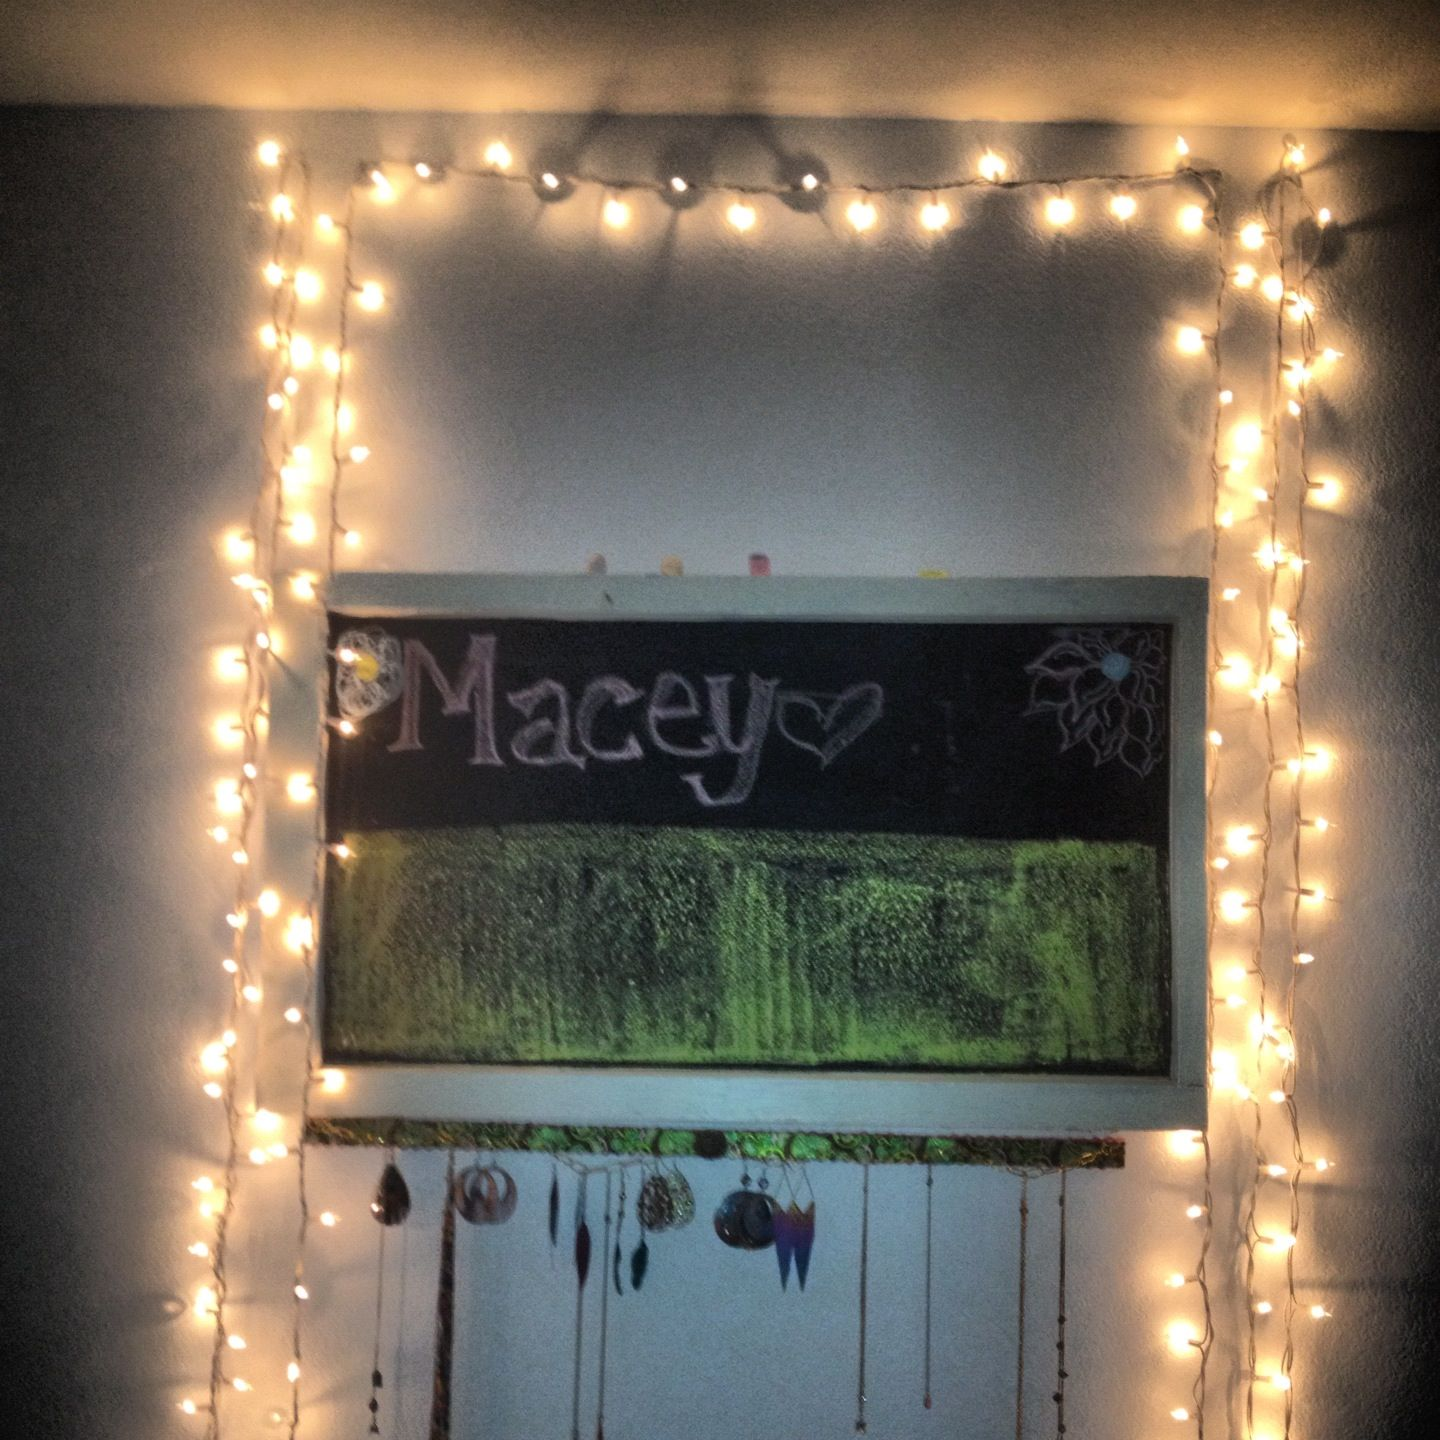 Chalkboard painted glass and Christmas lights